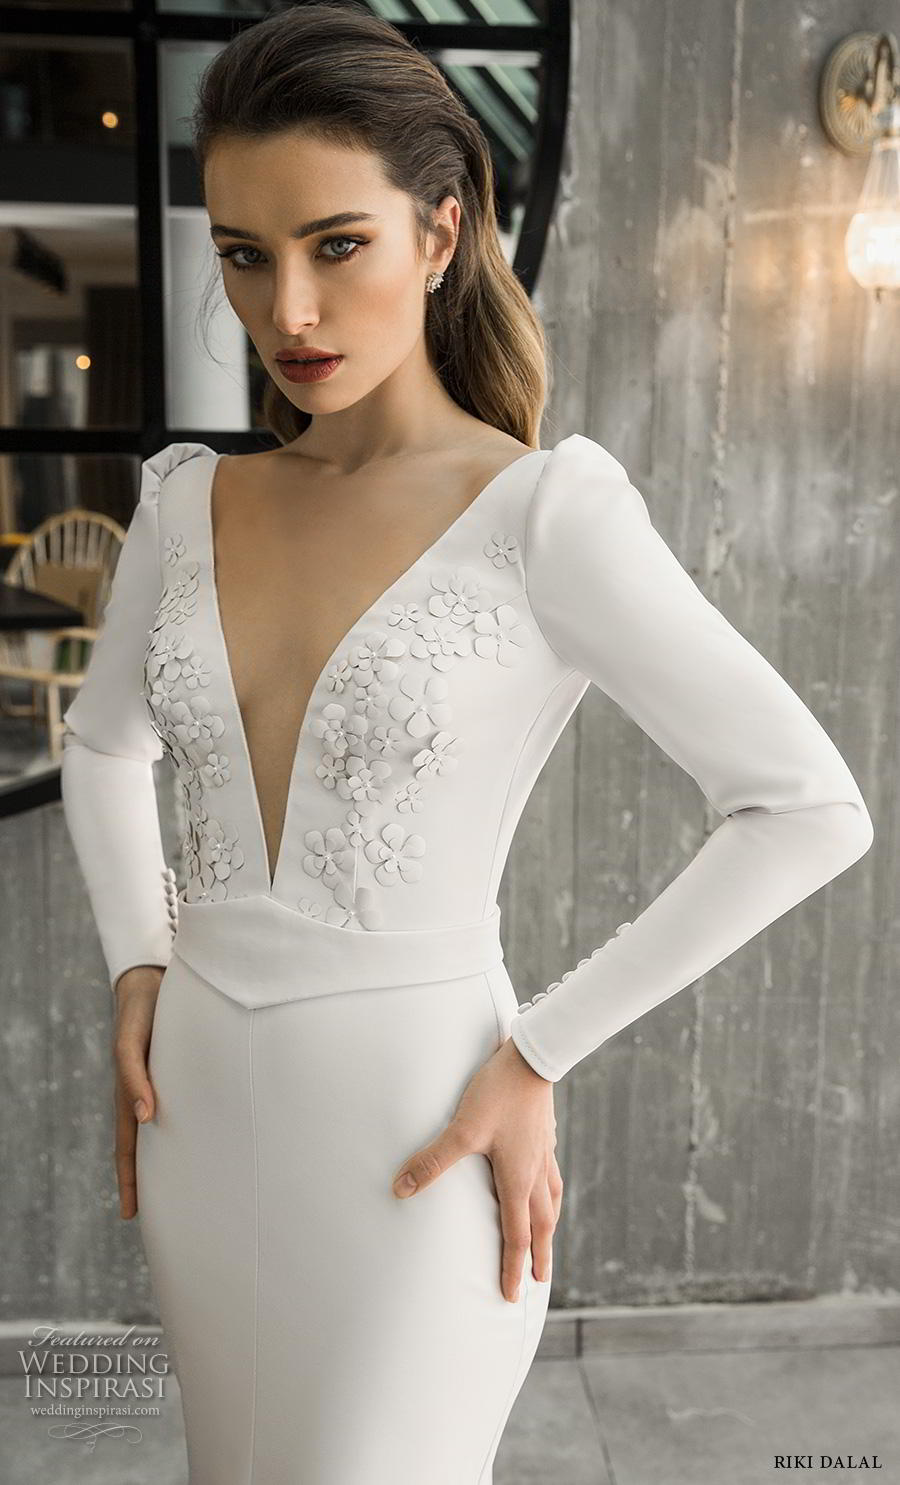 riki dalal 2018 glamour bridal long sleeves deep v neck heavily embellished bodice slit skirt simple sheath wedding dress backless v back chapel train (13) zv